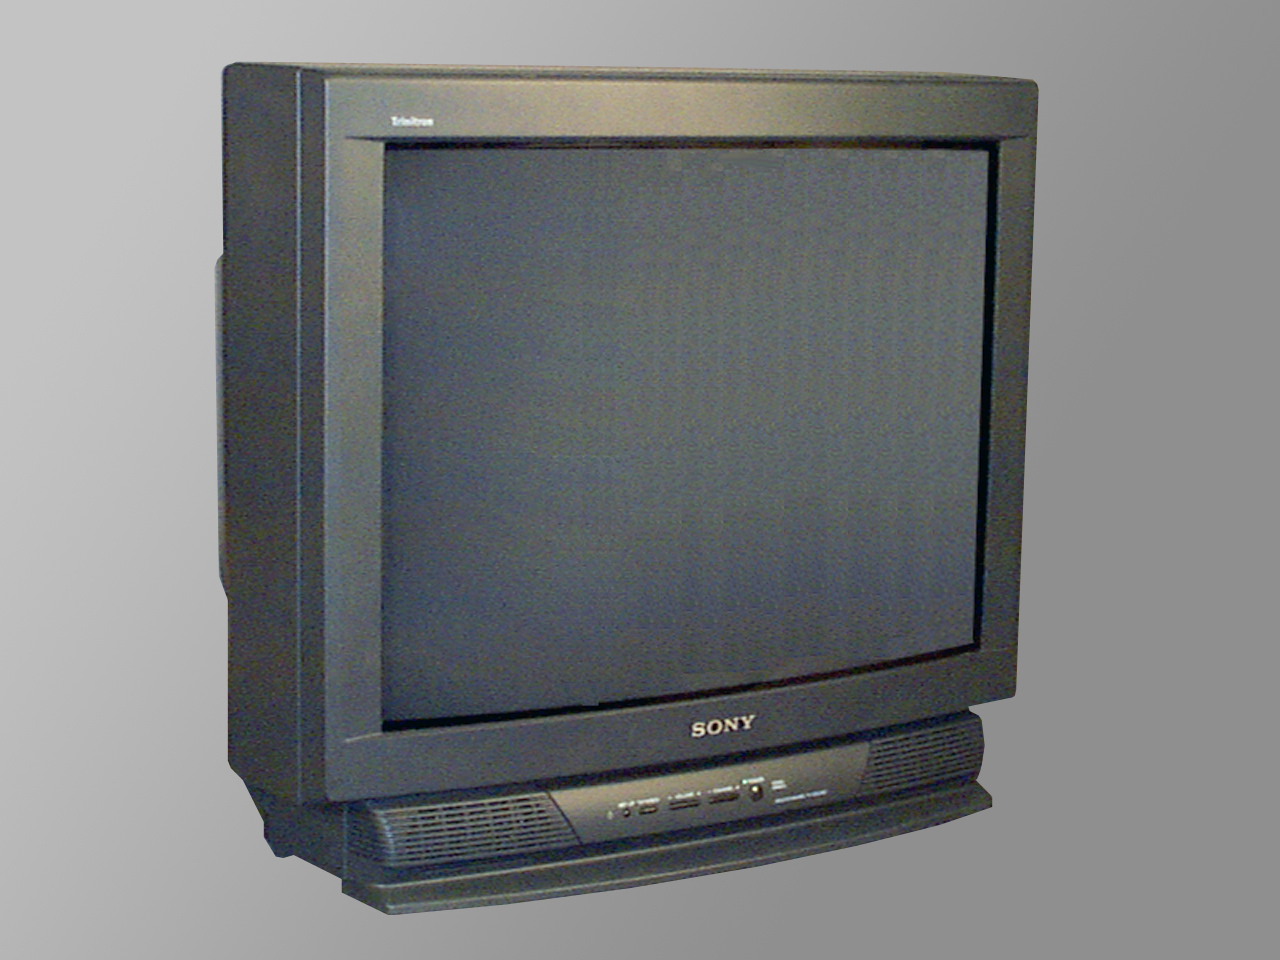 Sony Kv27s10 27 Inter Video Video Playback And Set